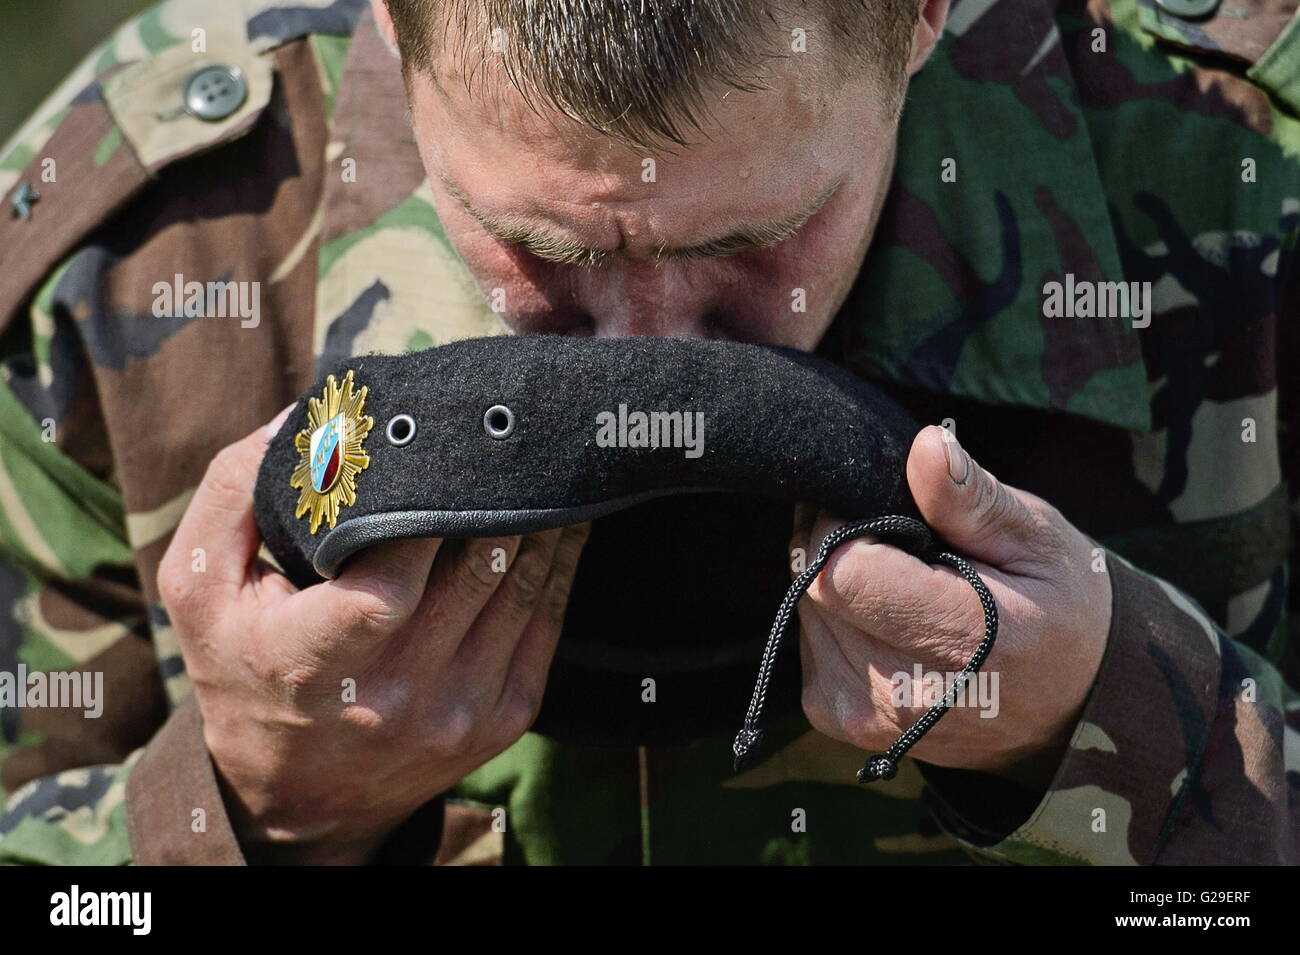 YEKATERINBURG, RUSSIA – MAY 26, 2016: An OMON special police officer holds an earned black beret after passing a - Stock Image